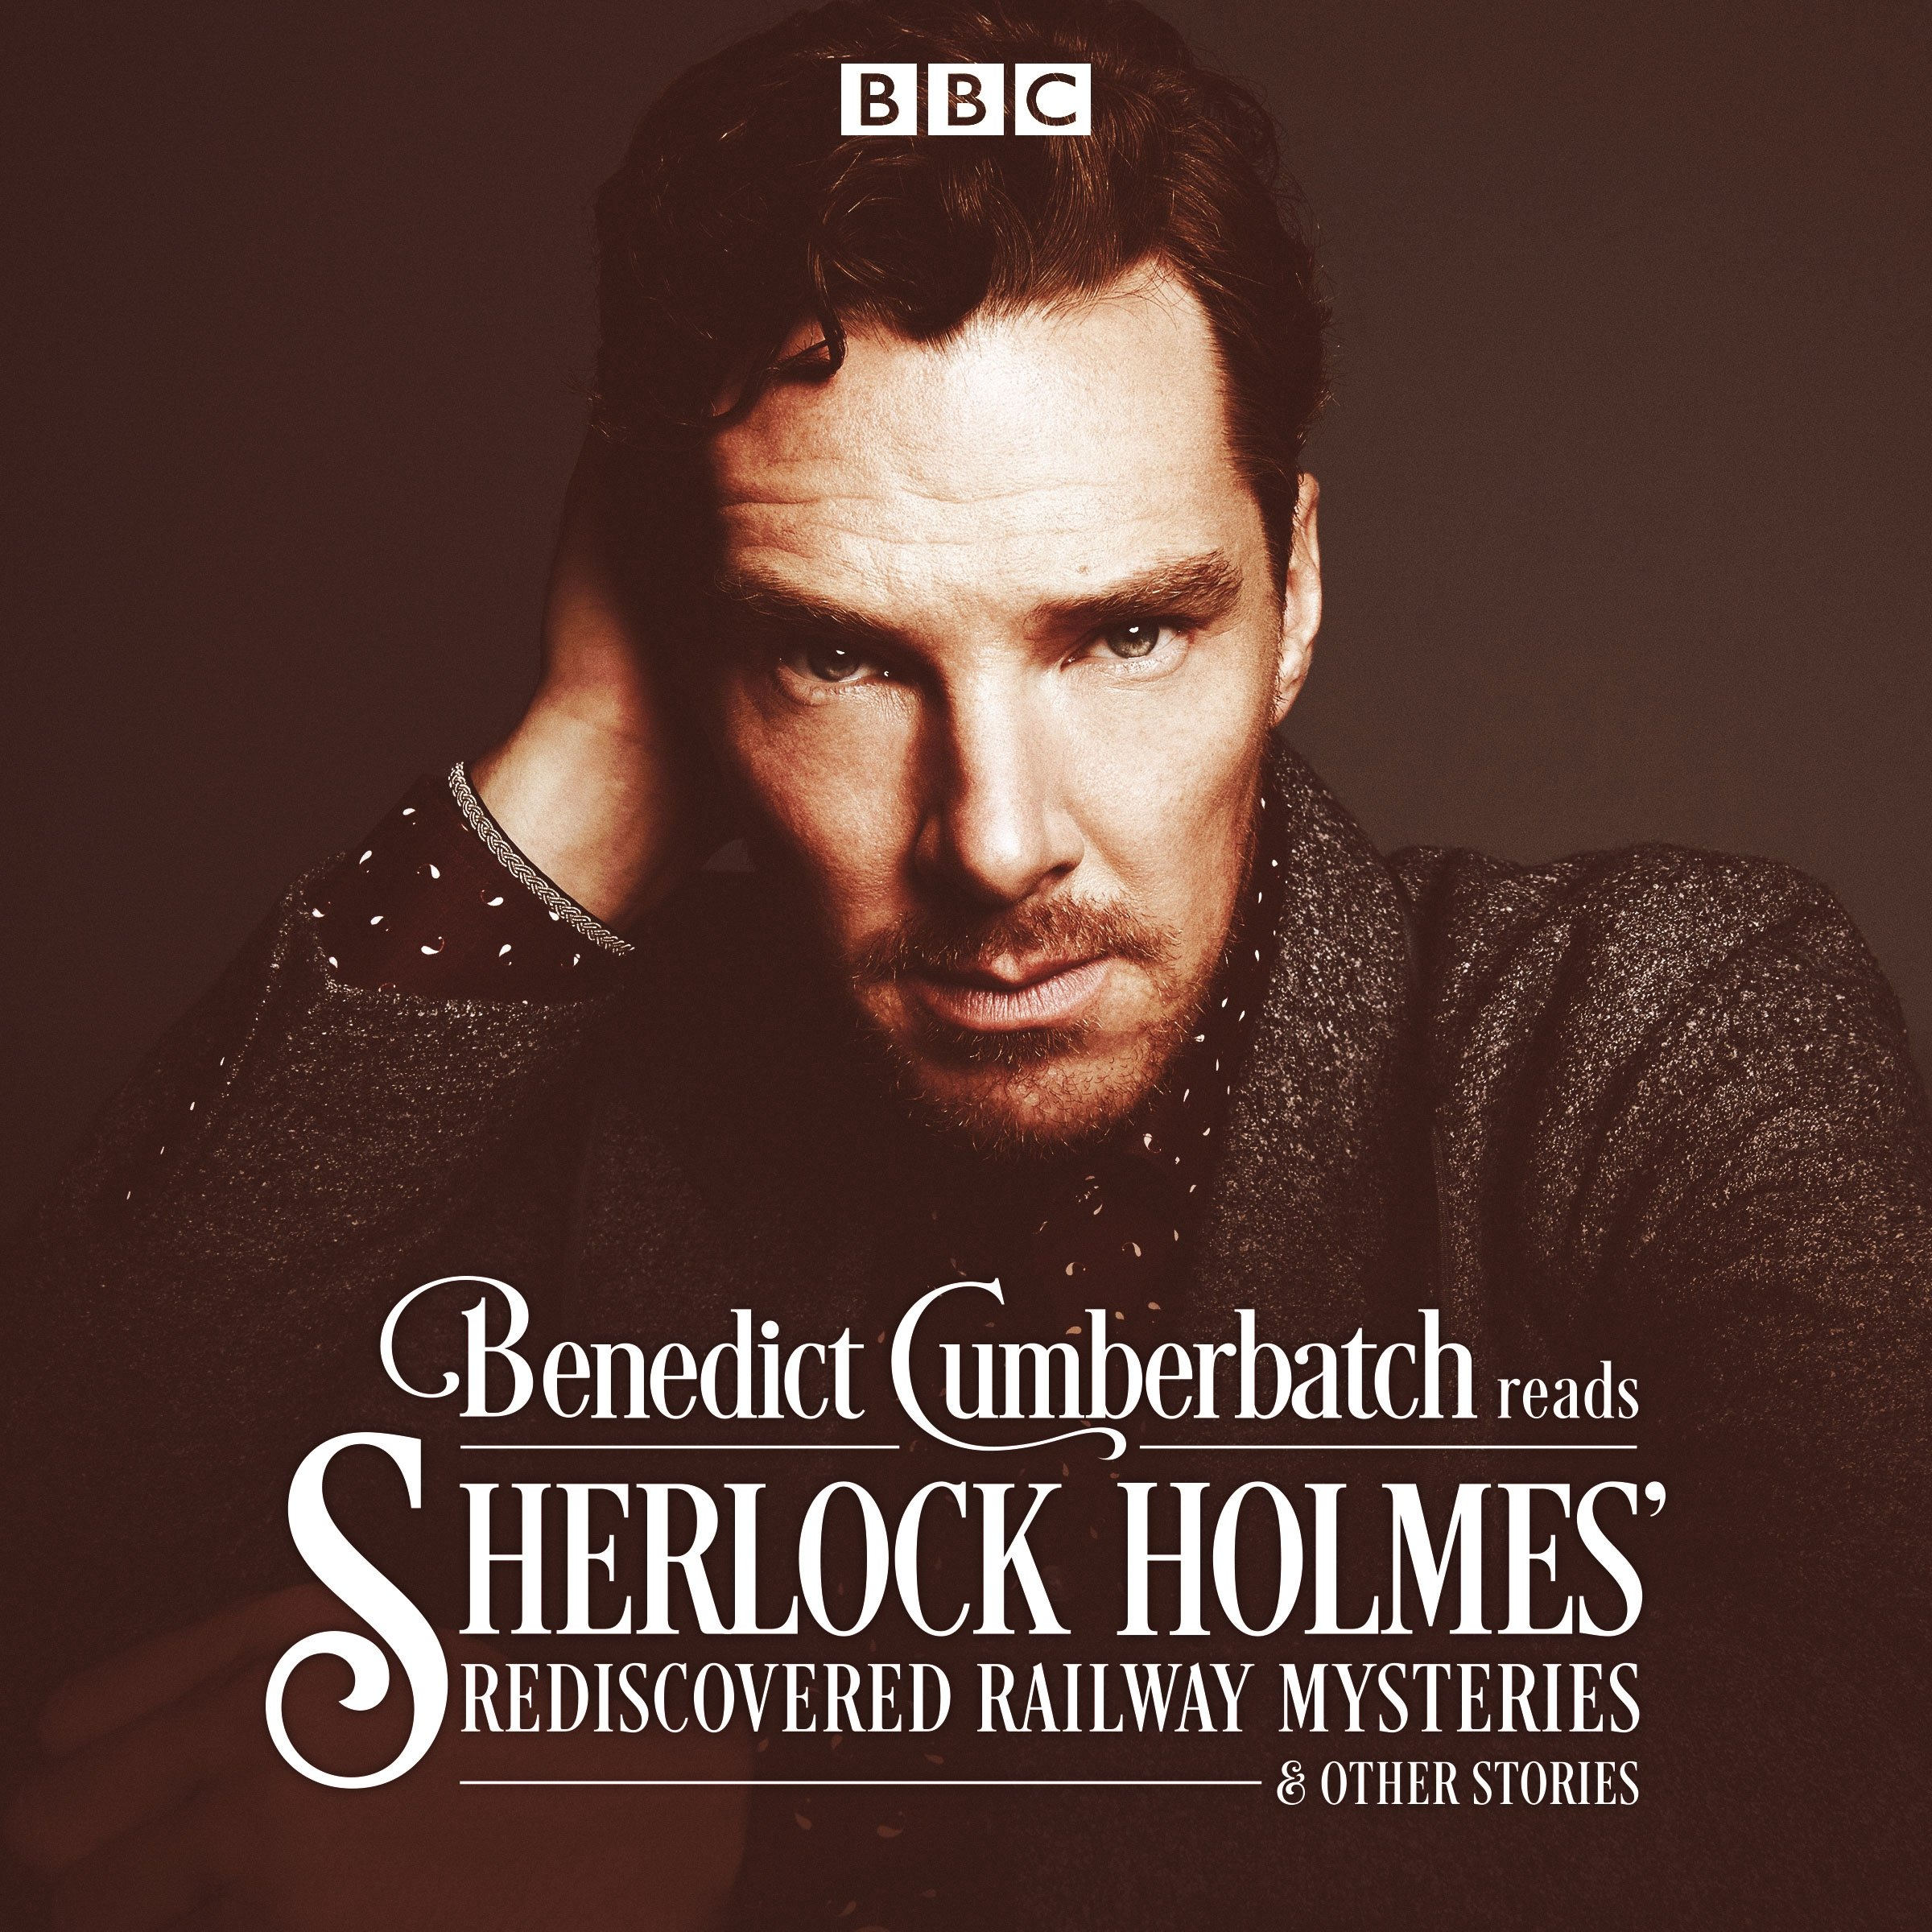 Benedict Cumberbatch Reads Sherlock Holmes' Rediscovered Railway